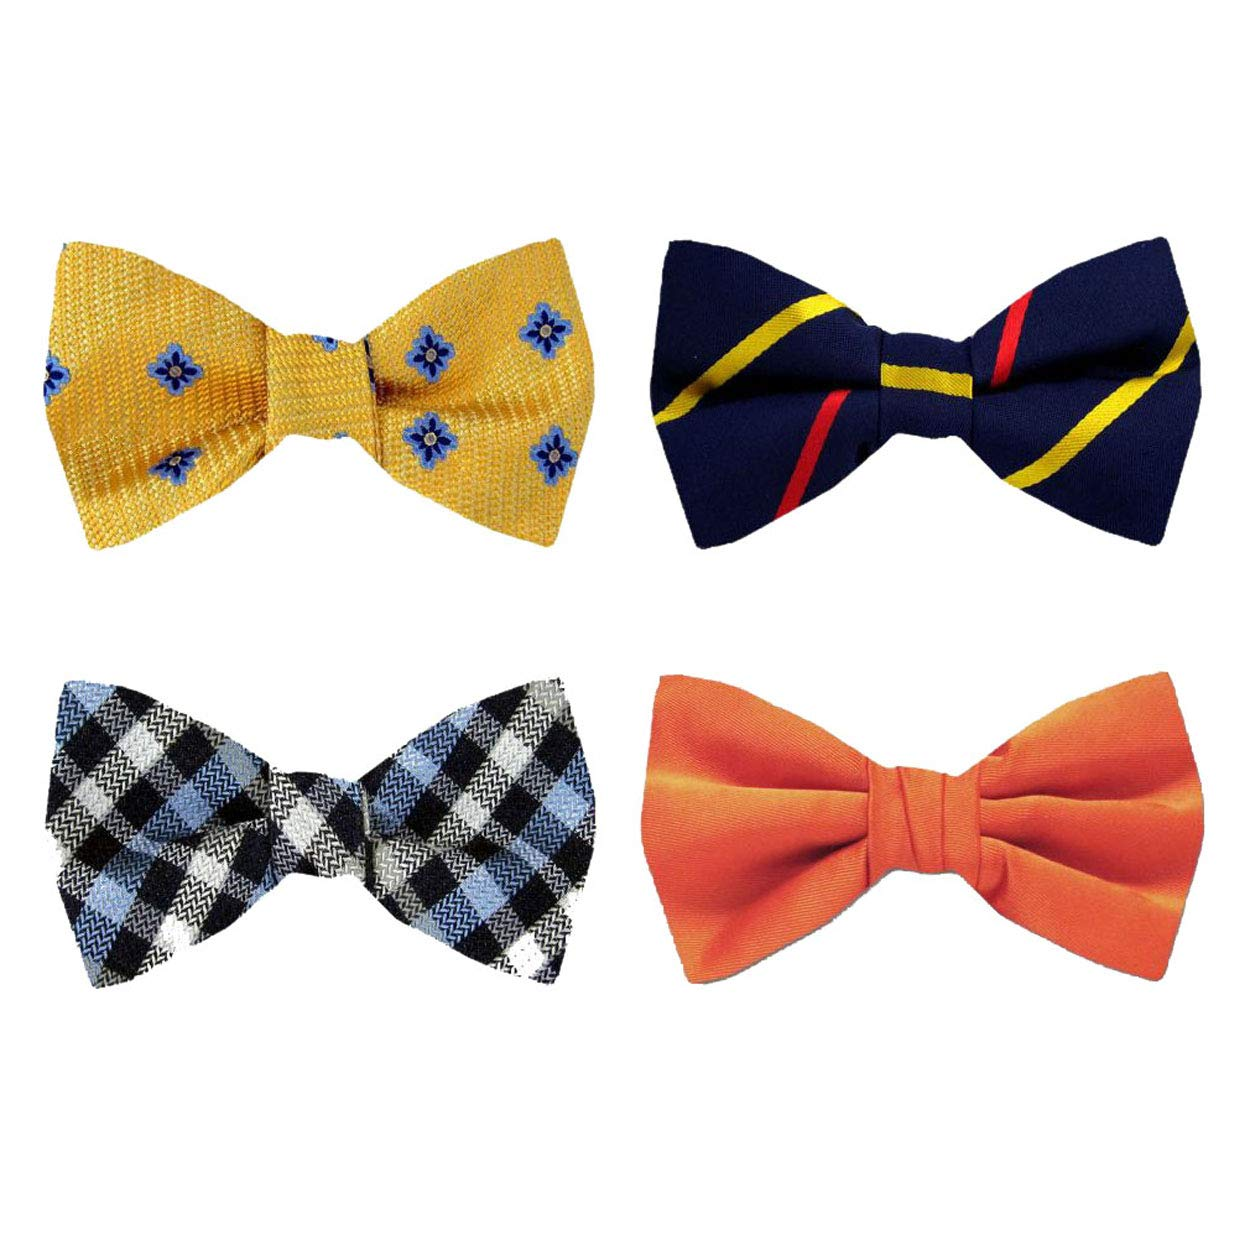 aa1b7126ac22 FBT-PK-103 - Mens Silk Designer Pattern Self Tie Bow Tie Ties Assorted 4  Bow Pre-Pack at Amazon Men's Clothing store: